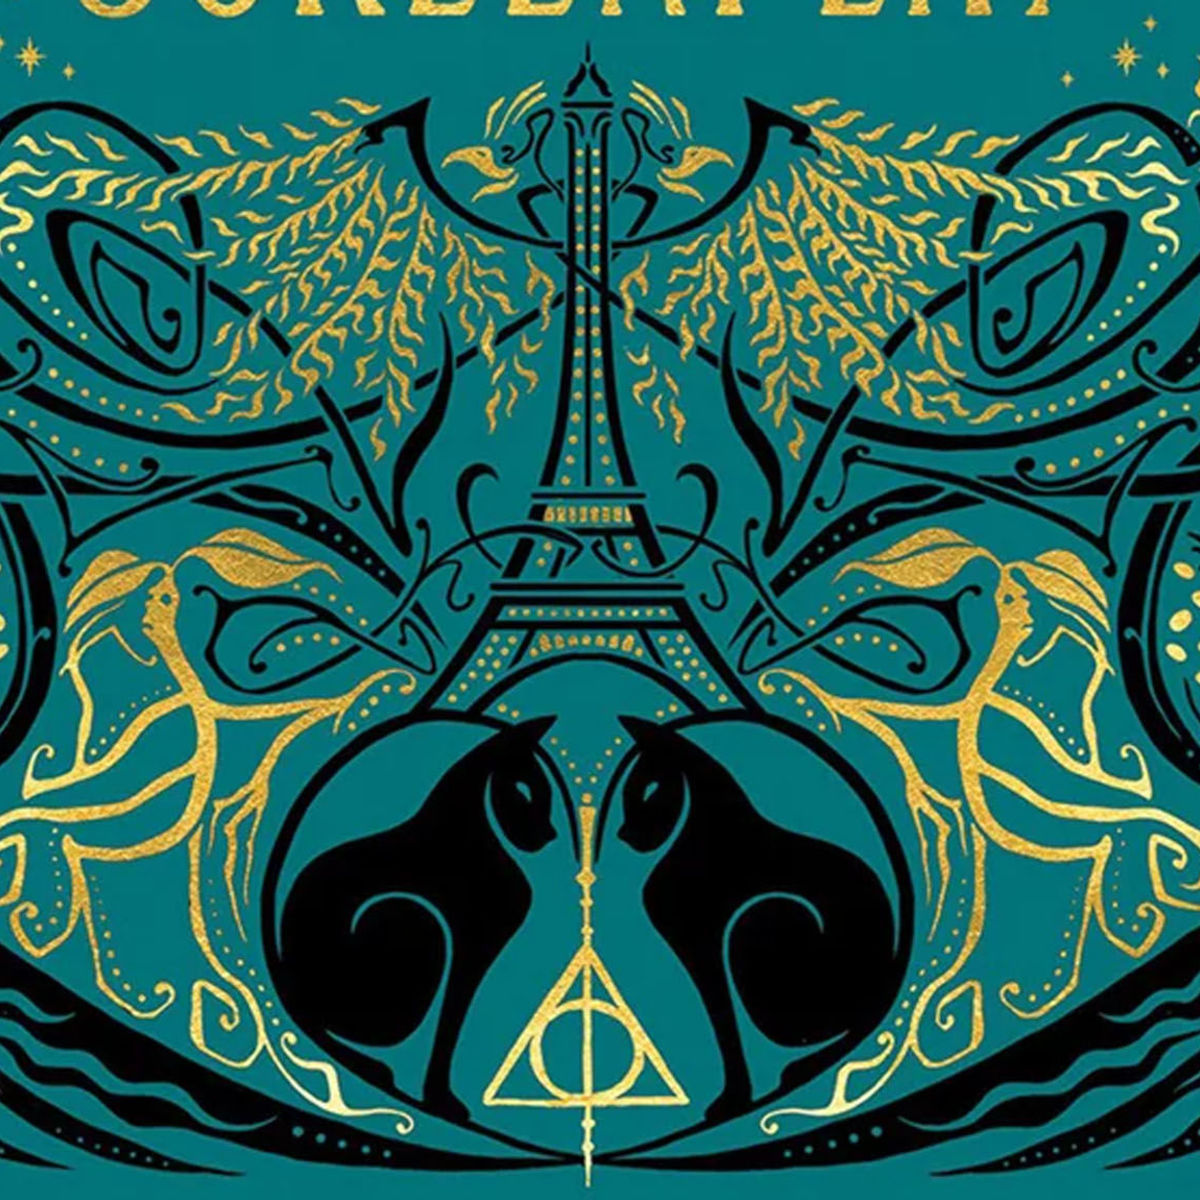 Fantastic Beasts: The Crimes of Grindelwald screenplay cover teases ...